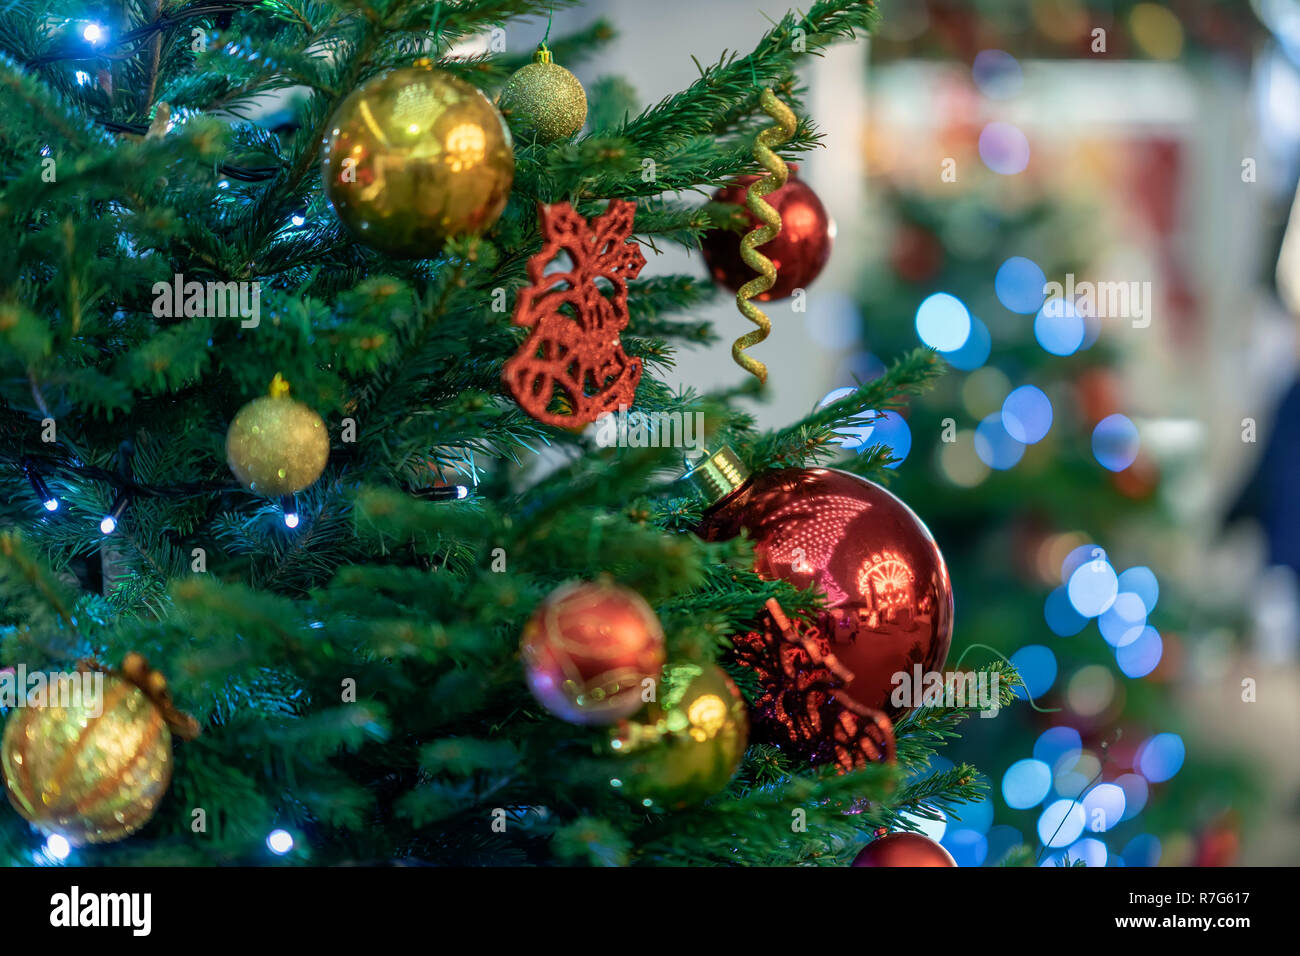 Festive christmas tree with bright colorful balls, garlands, decorations close-up. Selective focus. Winter holiday, Happy New Year - Stock Image